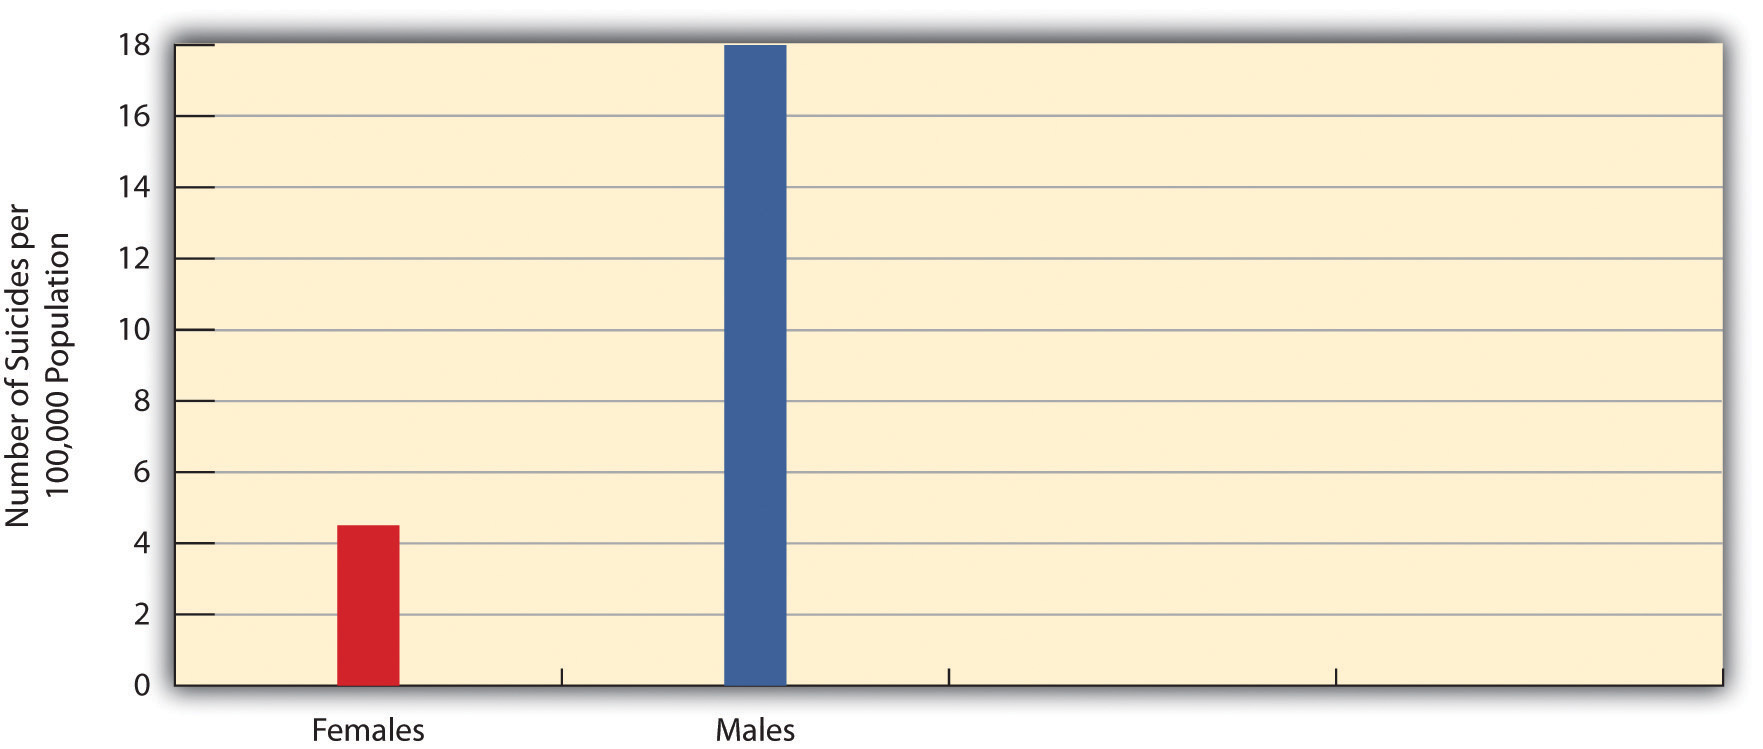 Gender and Suicide Rate (males are much higher than females)